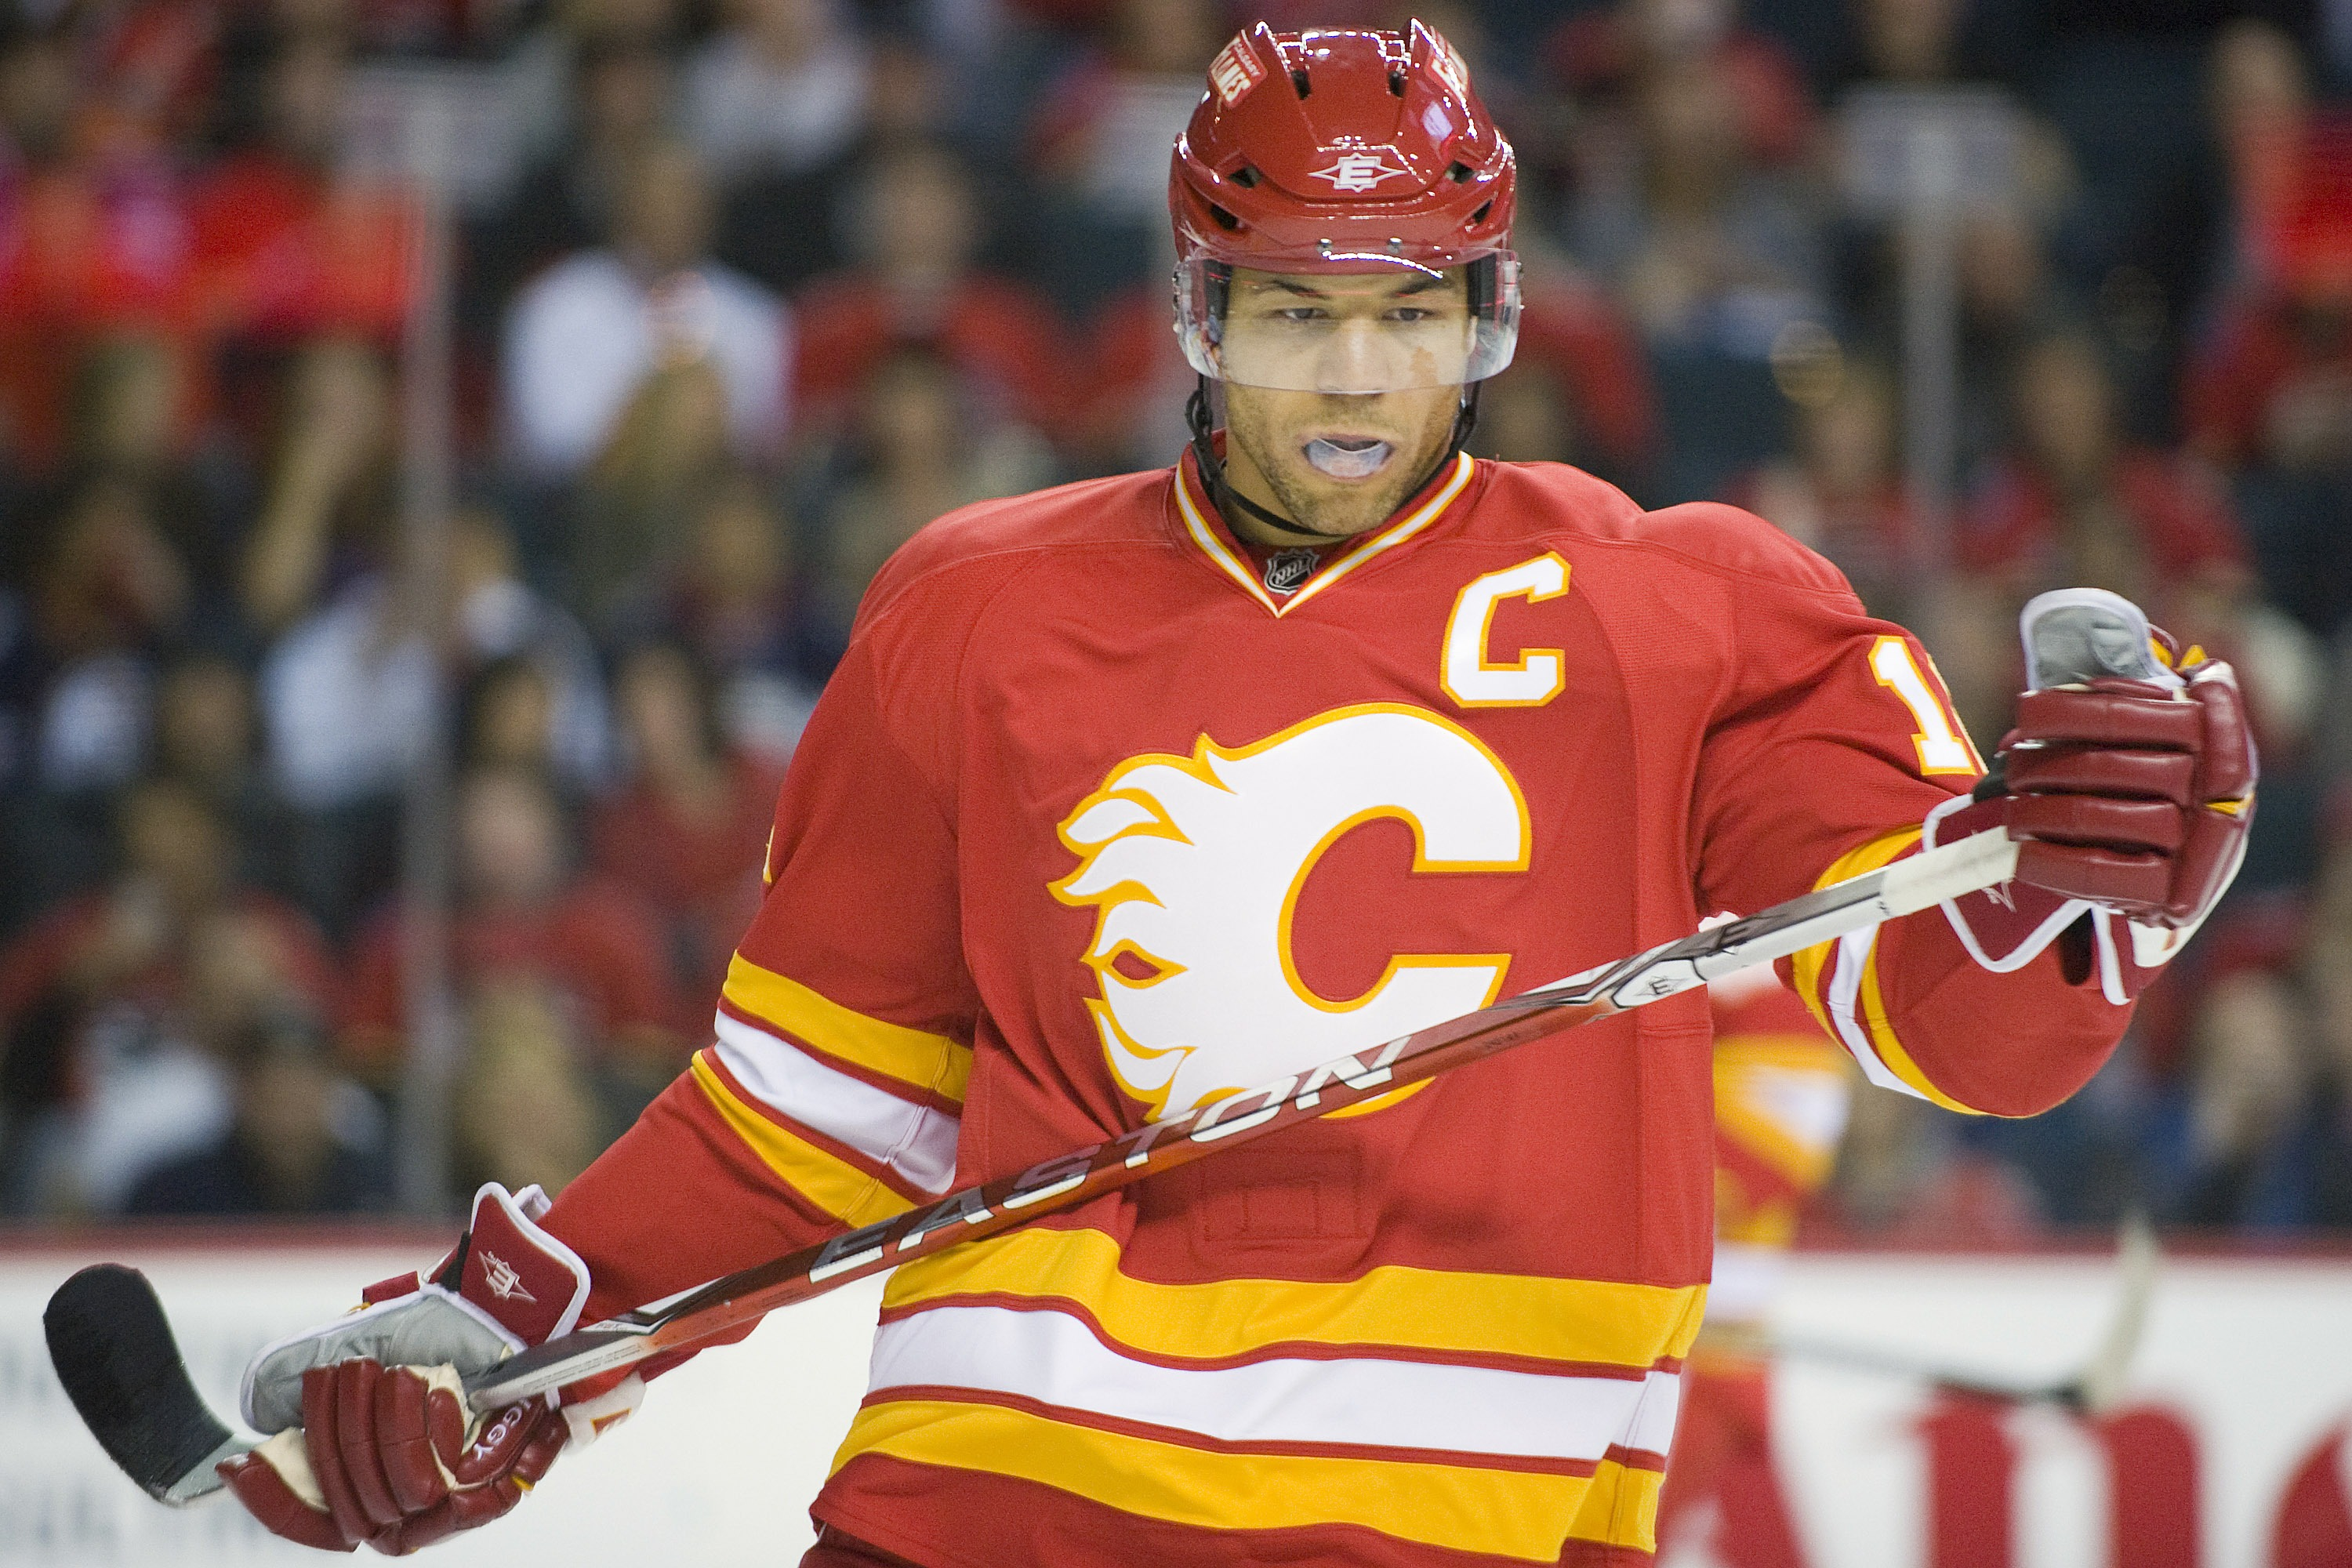 EDMONTON, CANADA - OCTOBER 16:  Calgary Flames right wing Jarome Iginla #12 takes a breather during a stoppage against the Edmonton Oilers at the Scotiabank Saddledome  on October 16, 2010 in Calgary, Alberta, Canada.  The Flames beat the Oilers 5-3.  (Ph